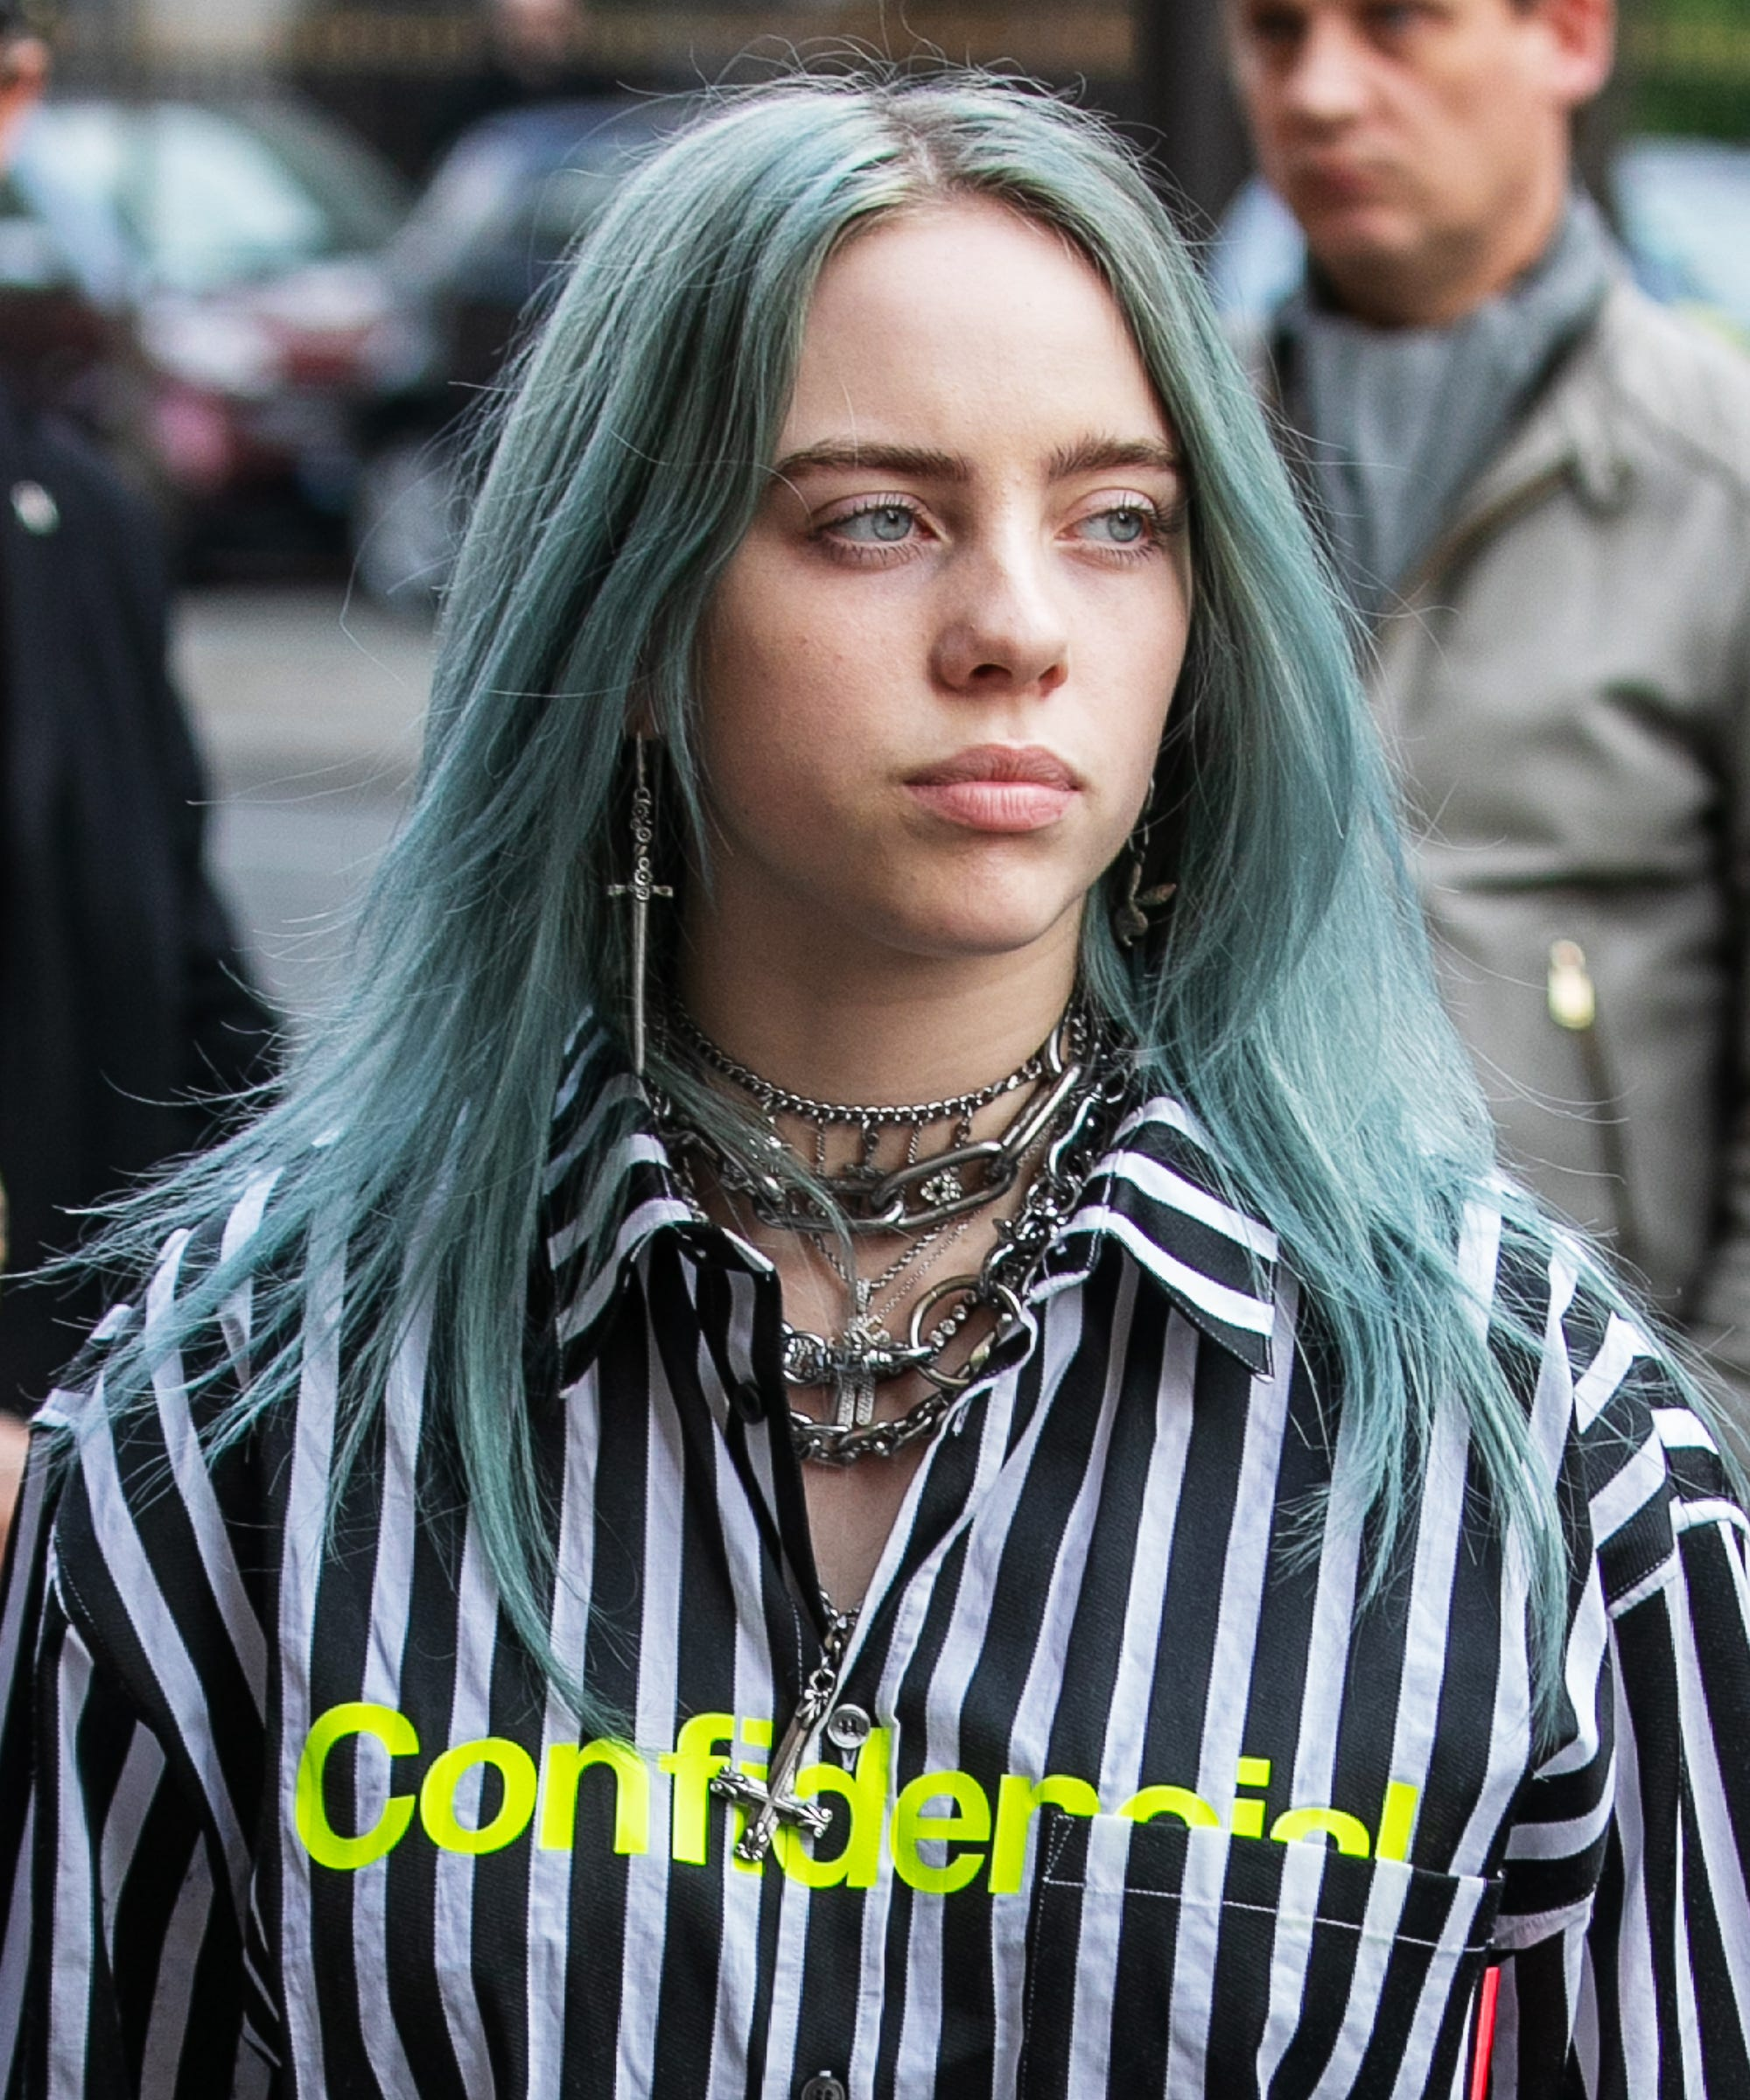 Billie Eilish Calls Out Magazine For Topless Cover